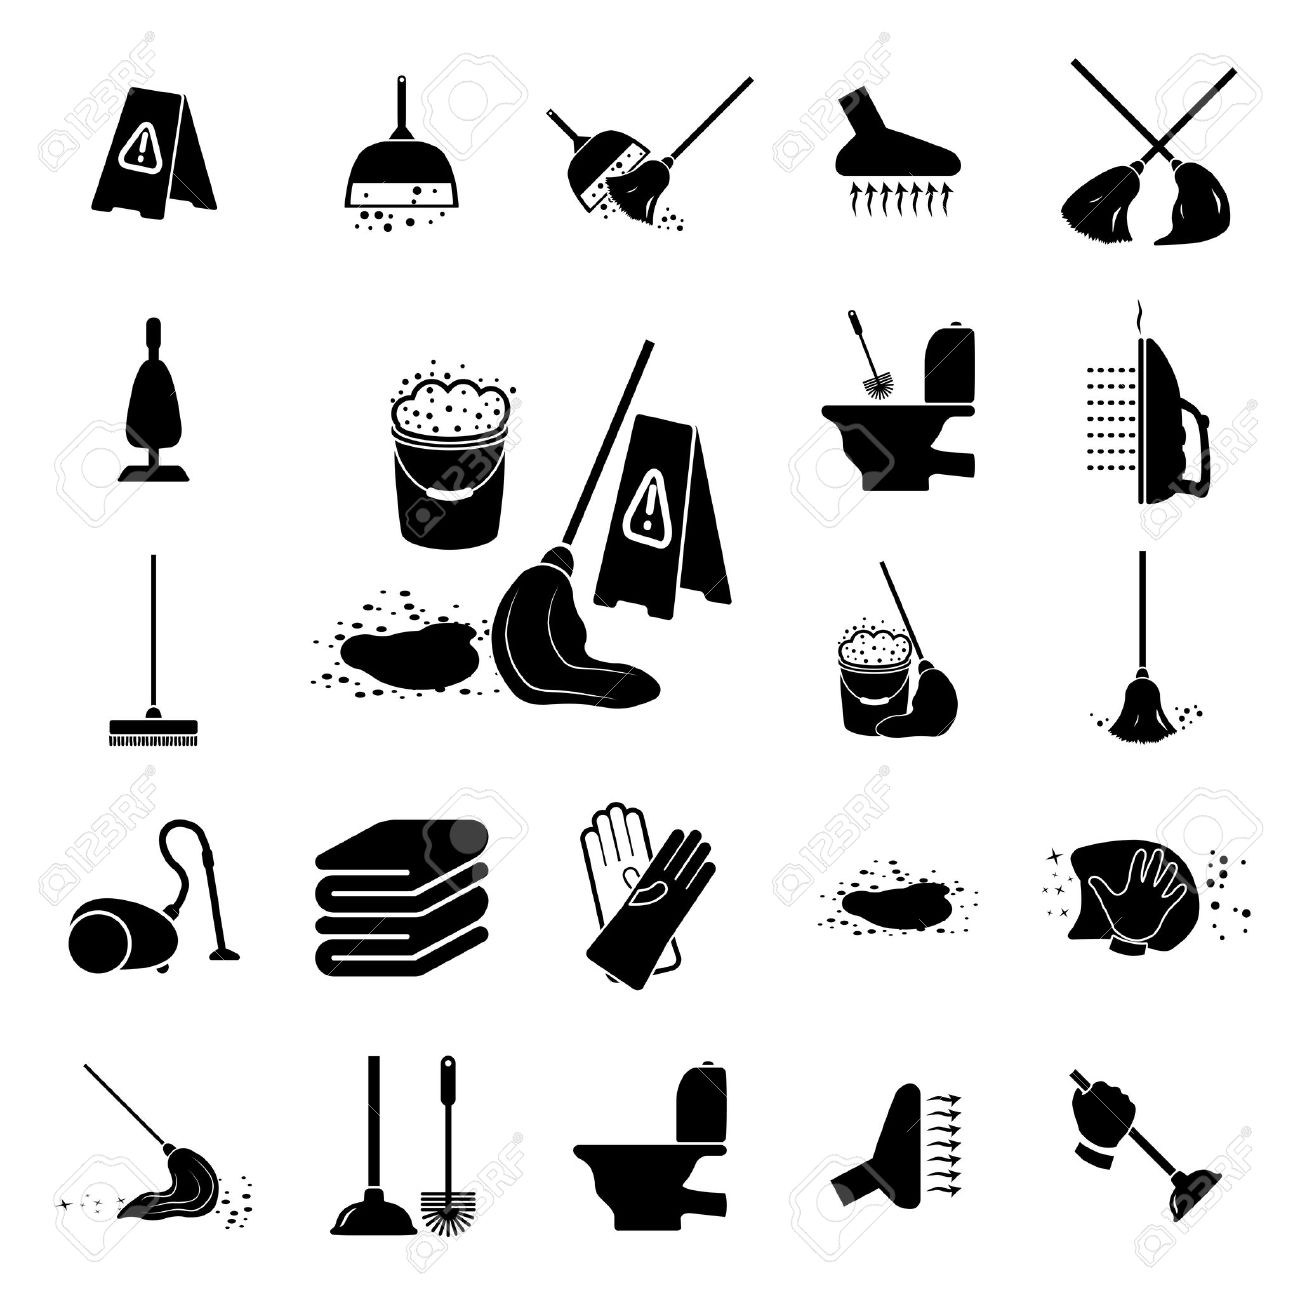 Icons set Cleaning Vector illustration on white background - 22971694